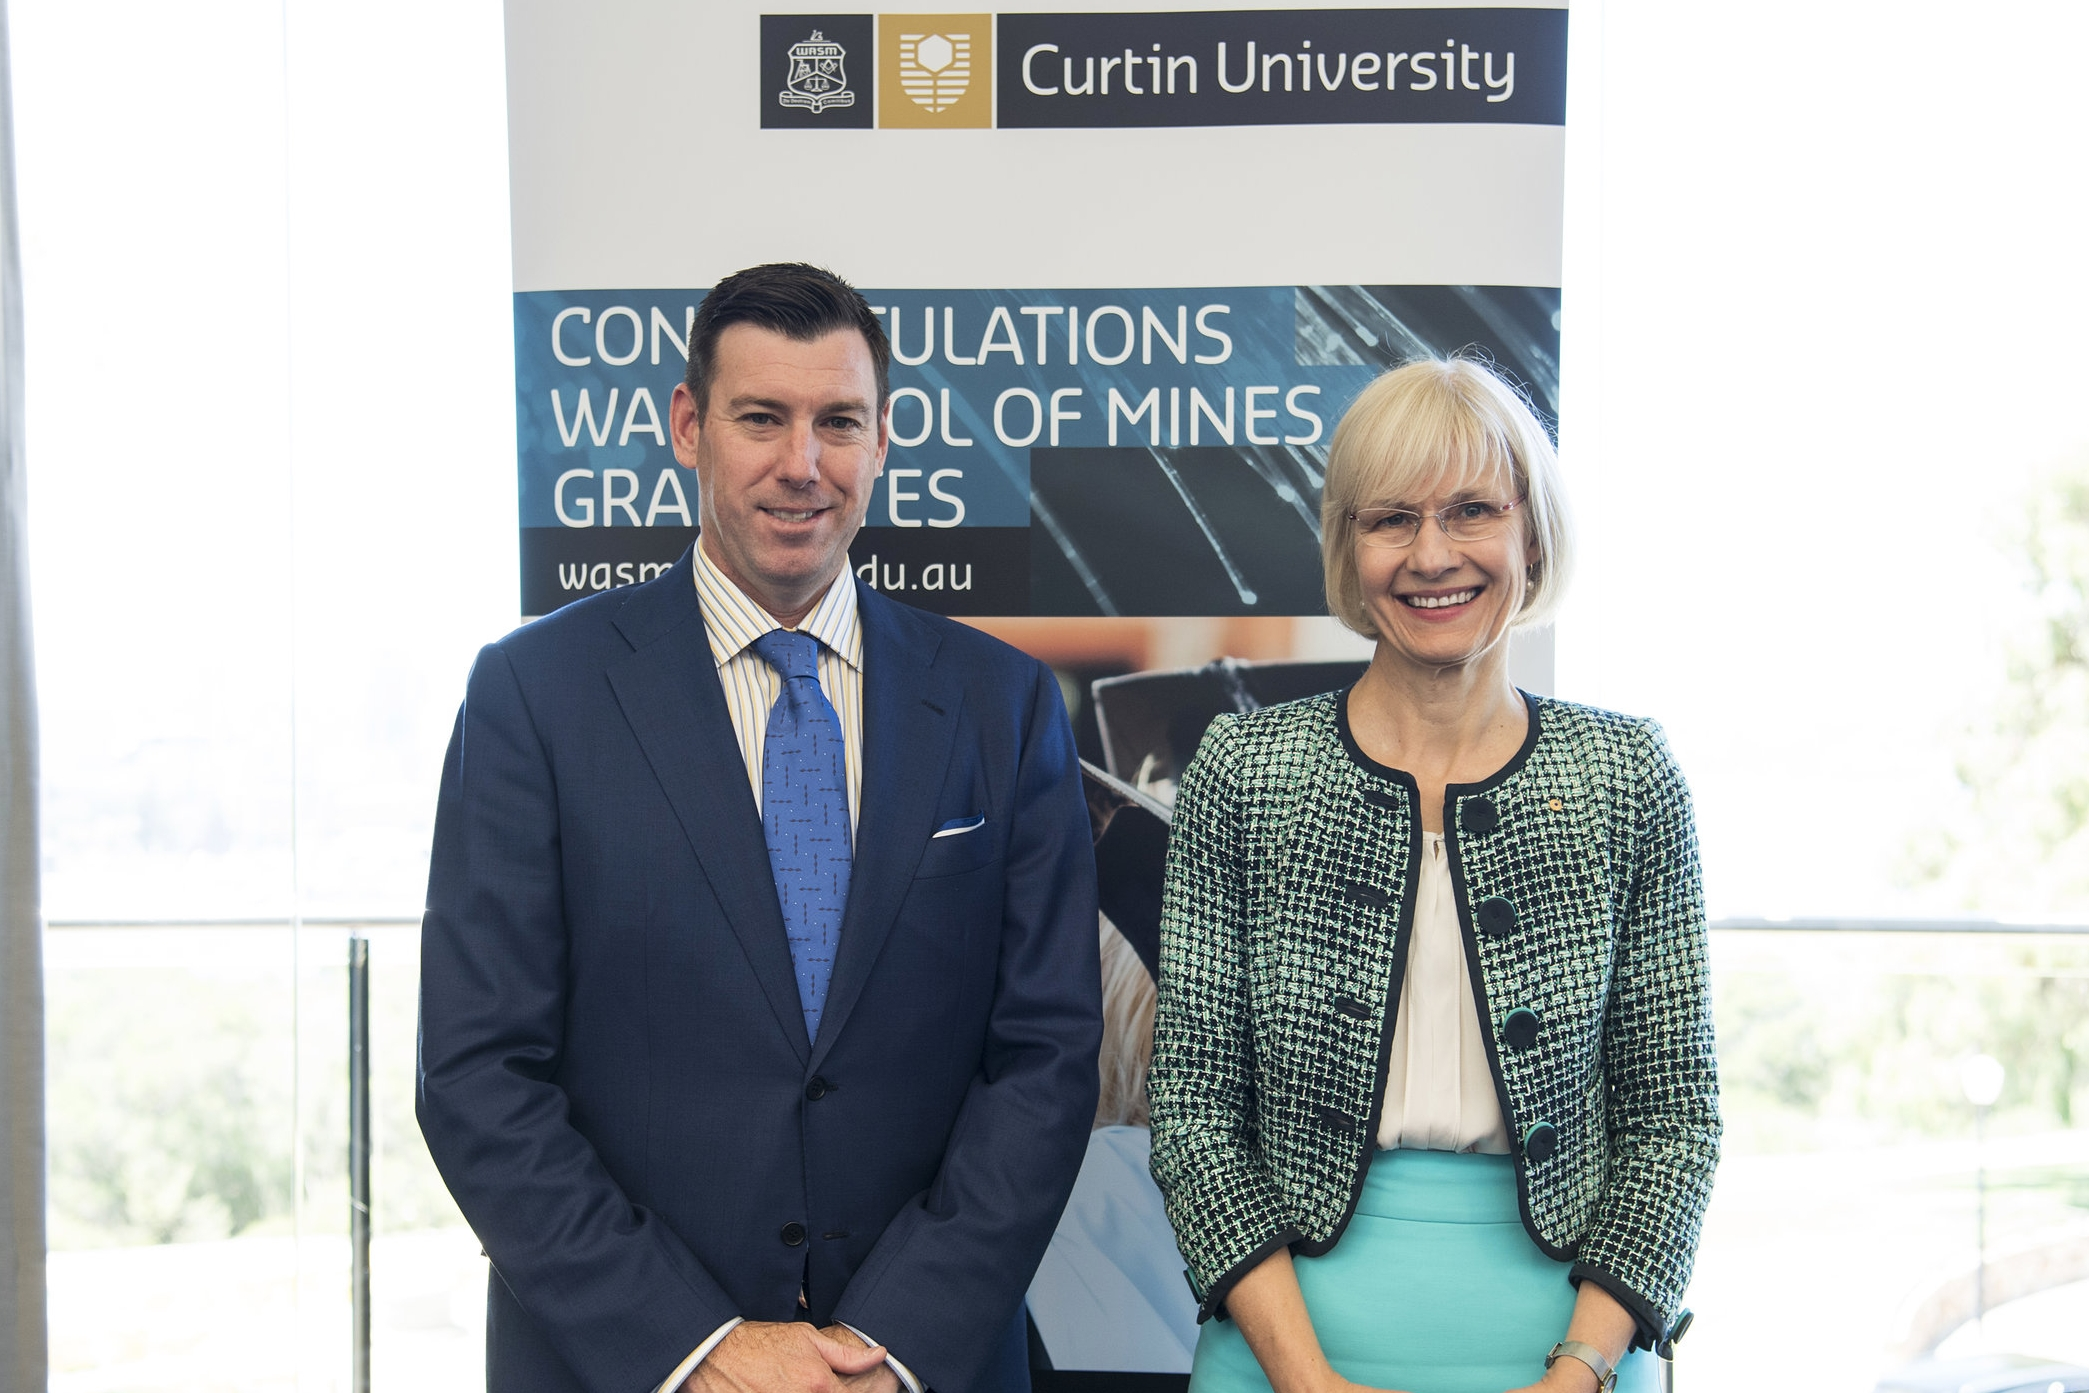 WASMA President Bill Beament and Curtin University Vice-Chancellor Debbie Terry.